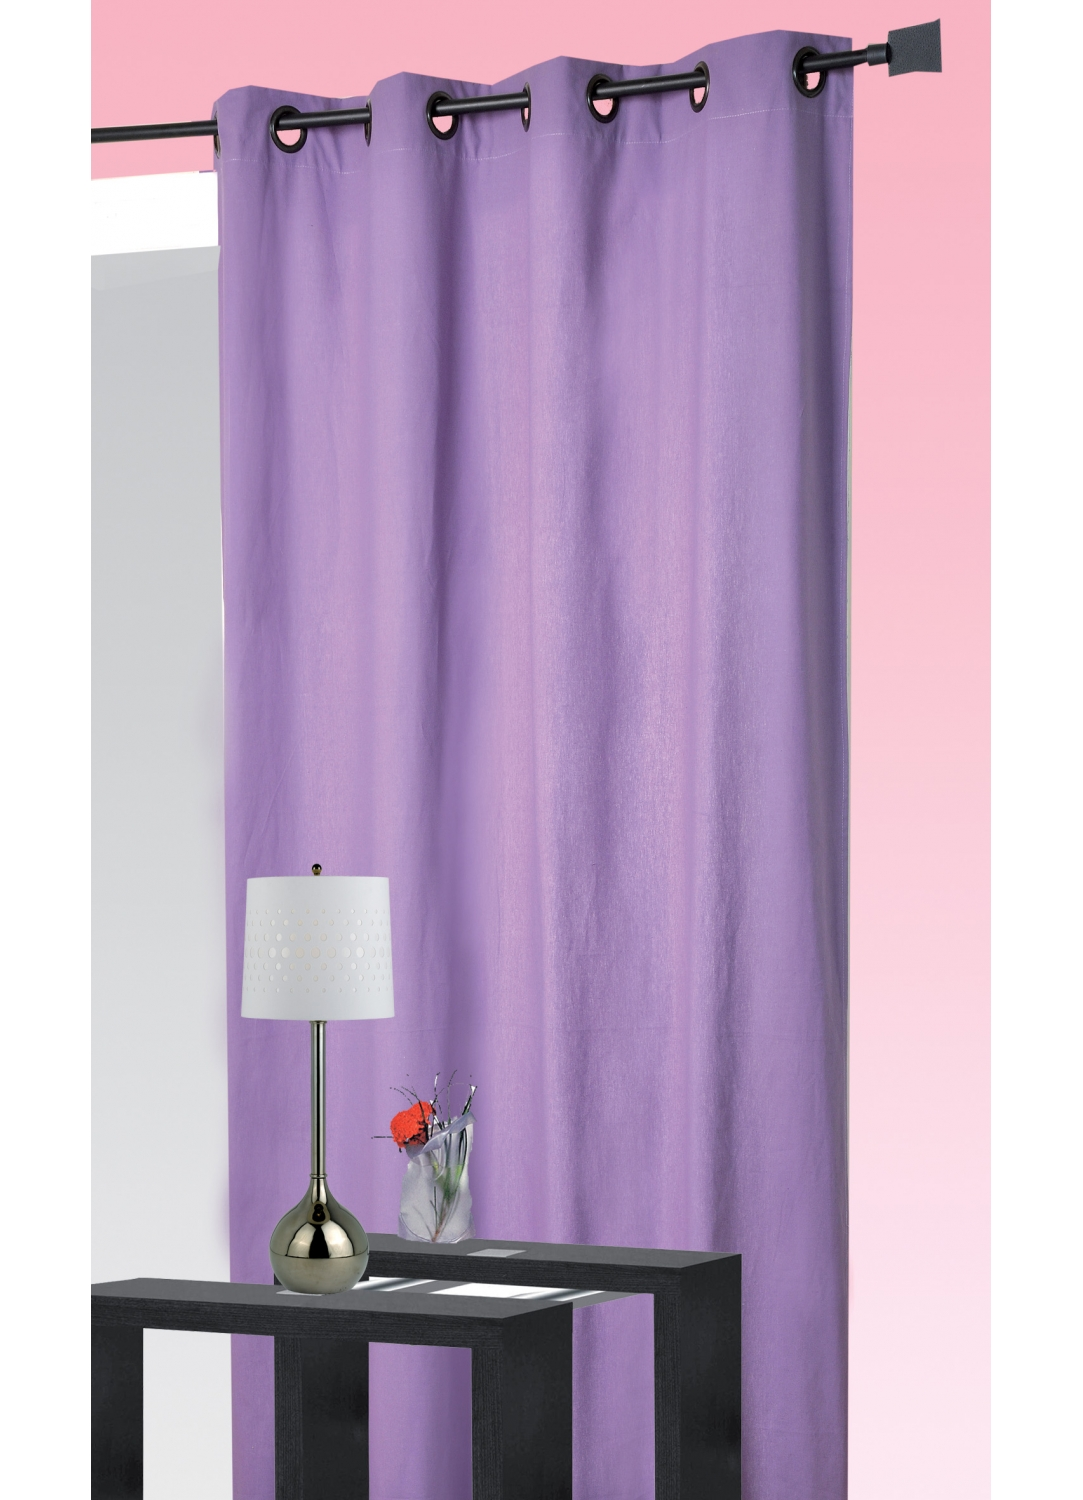 rideau coton uni oeillets lilas vert rubis homemaison vente en ligne rideaux. Black Bedroom Furniture Sets. Home Design Ideas